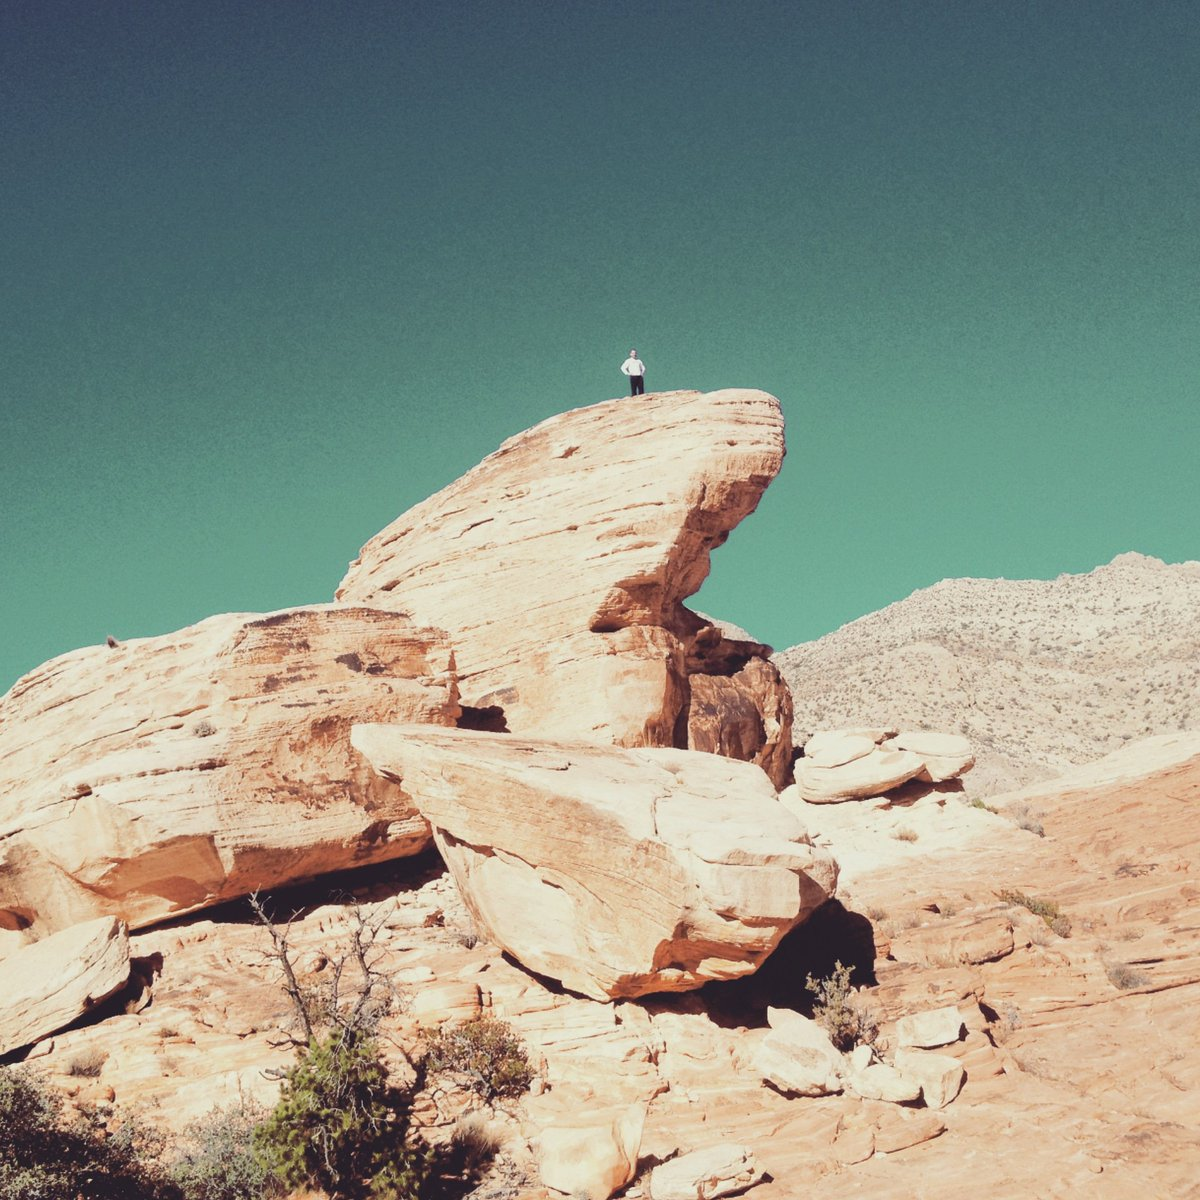 Hiking helps clear the mind and refocus you towards what's important; a form of non-deliberate meditation.  Plus the views usually aren't half bad either :) .  http://www.strrel.com #plasticfree  #reusable #redrockcanyon #calicotanks #vegaslife #strrel #vsconature #meditationpic.twitter.com/TU76YS0HRT